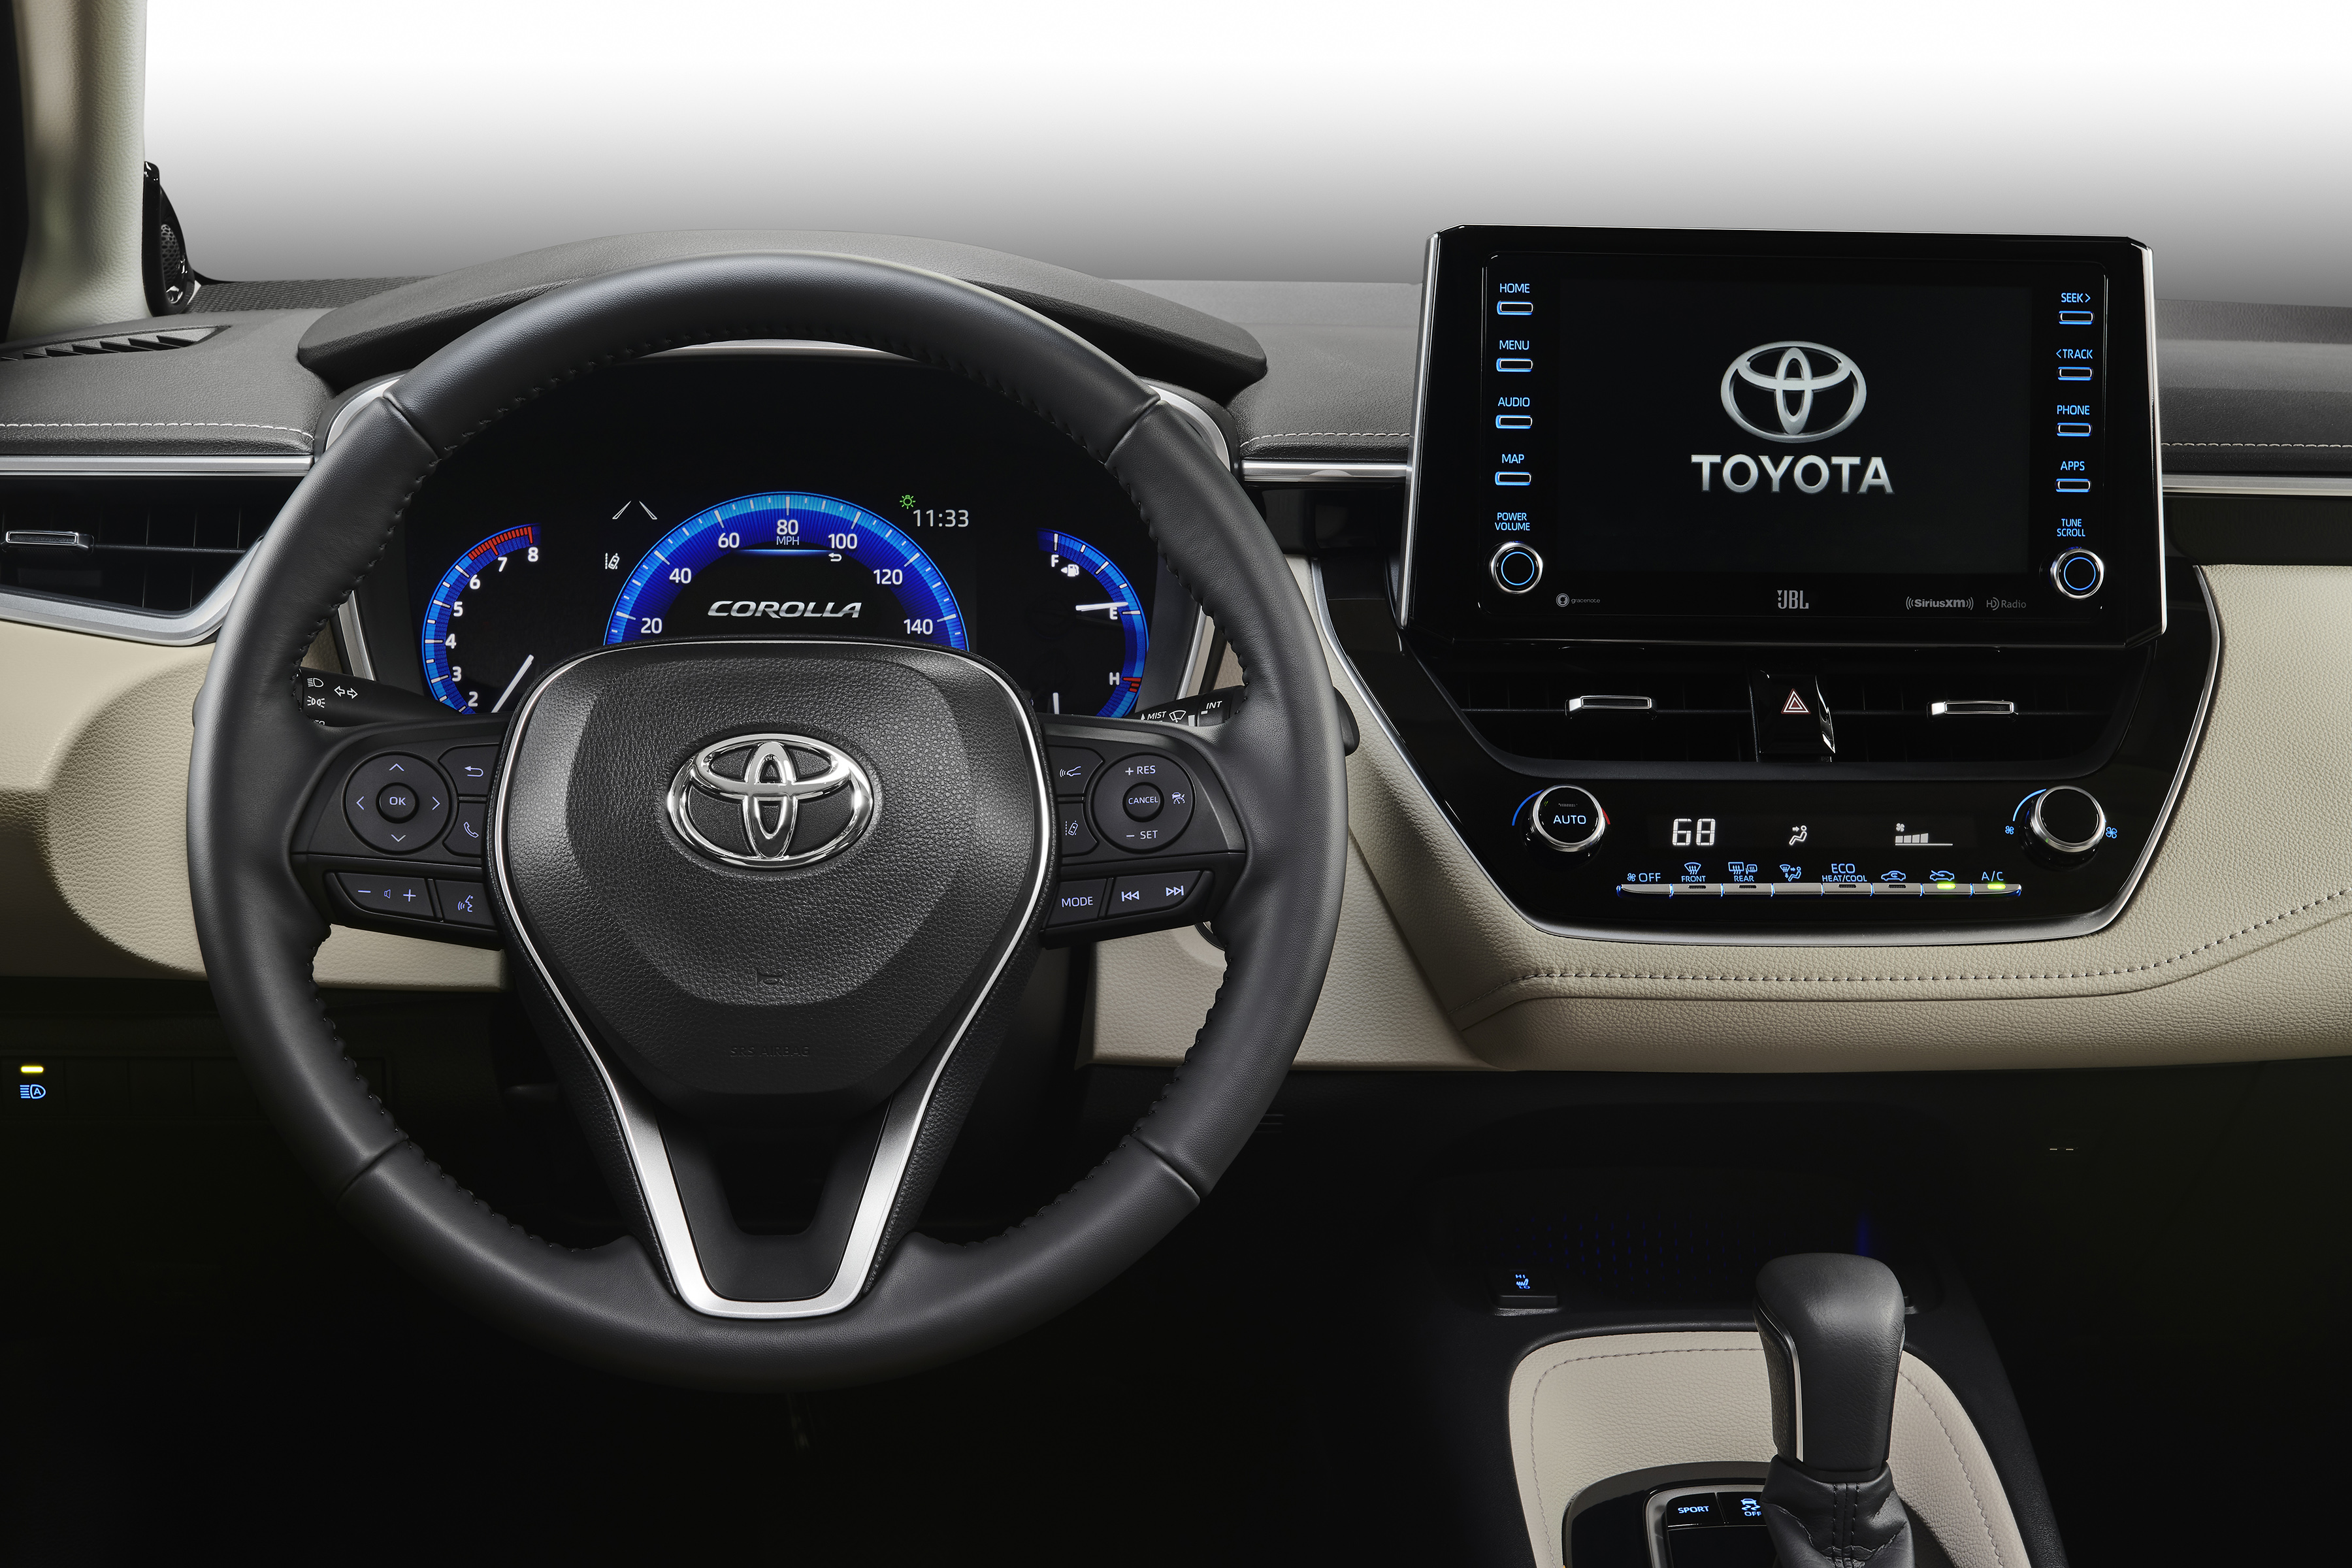 2020 Toyota Corolla: All-New Inside and Out Plus Standard